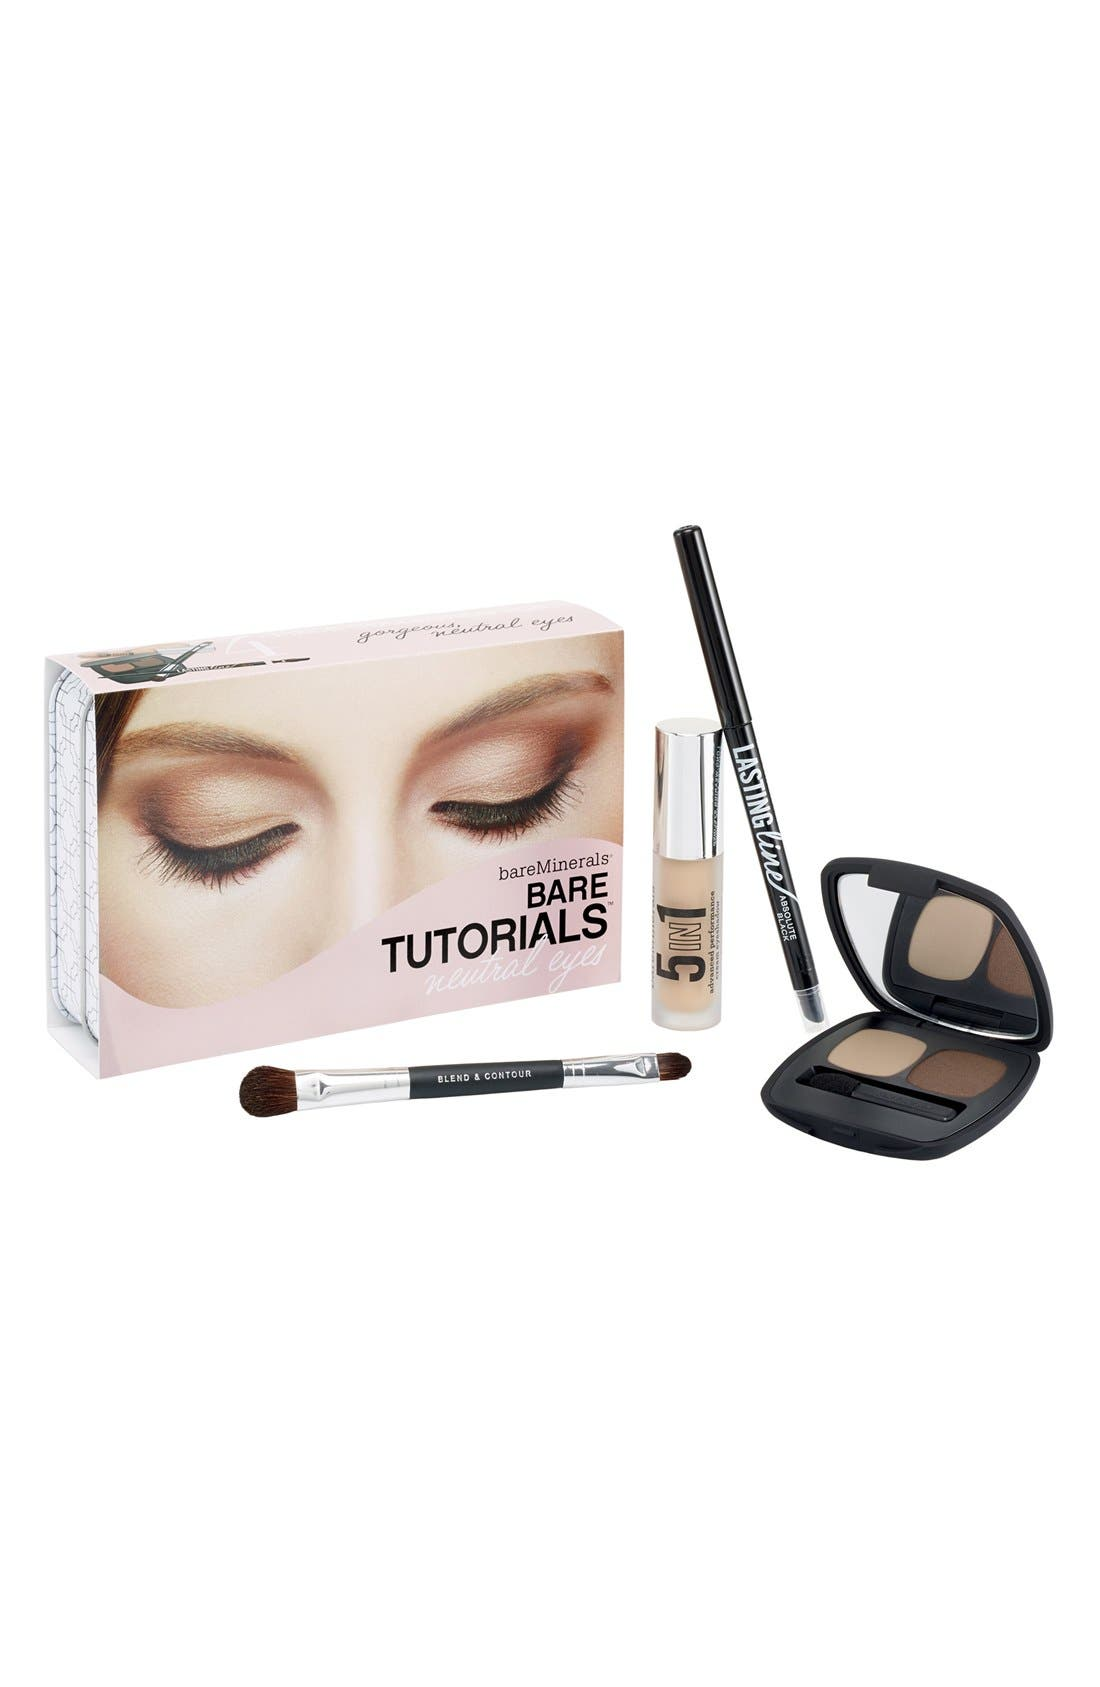 bareMinerals® 'Bare Tutorials - Neutral Eyes' Set ($62 Value)